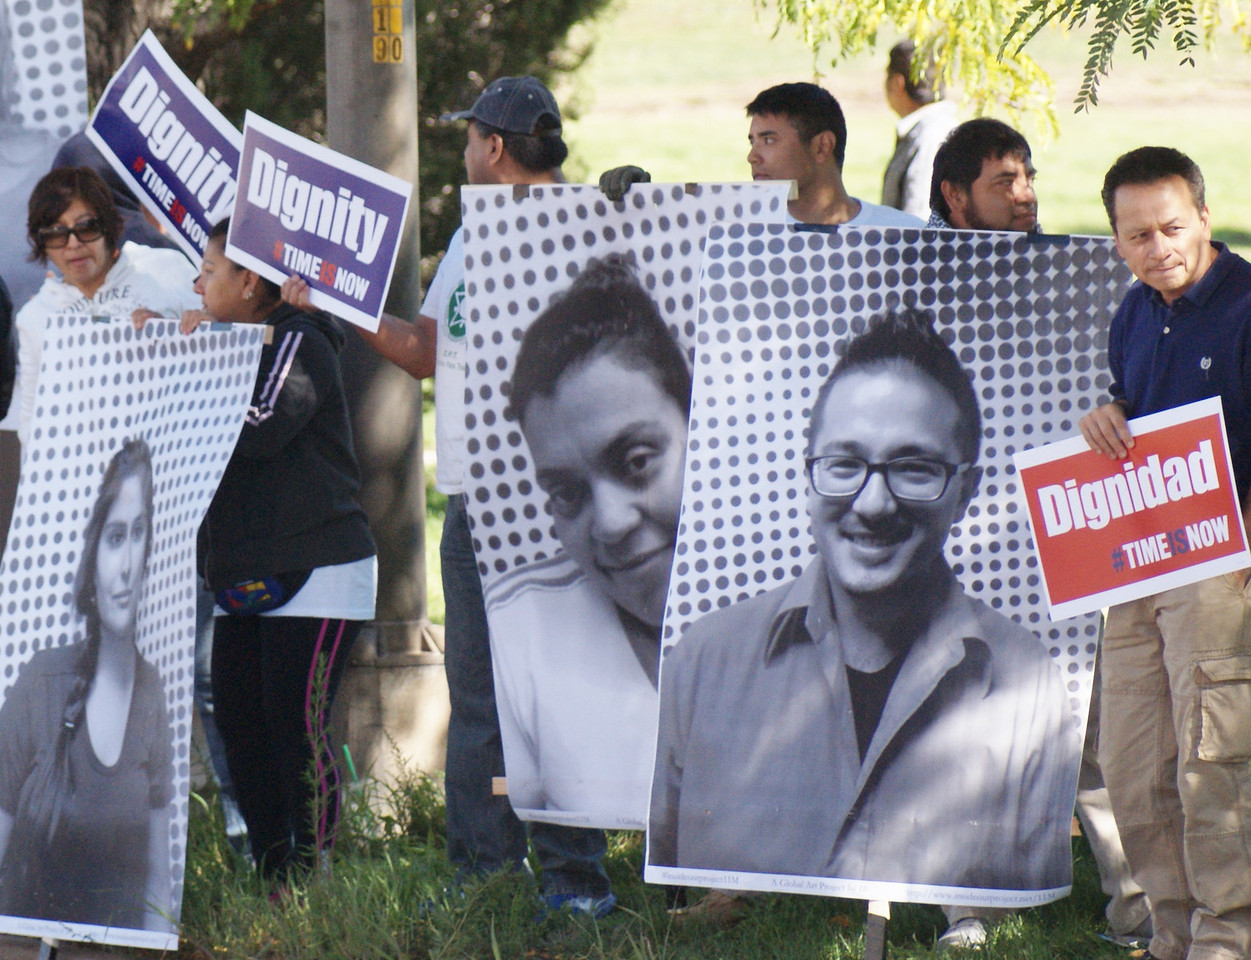 immigration-reform-rally-7